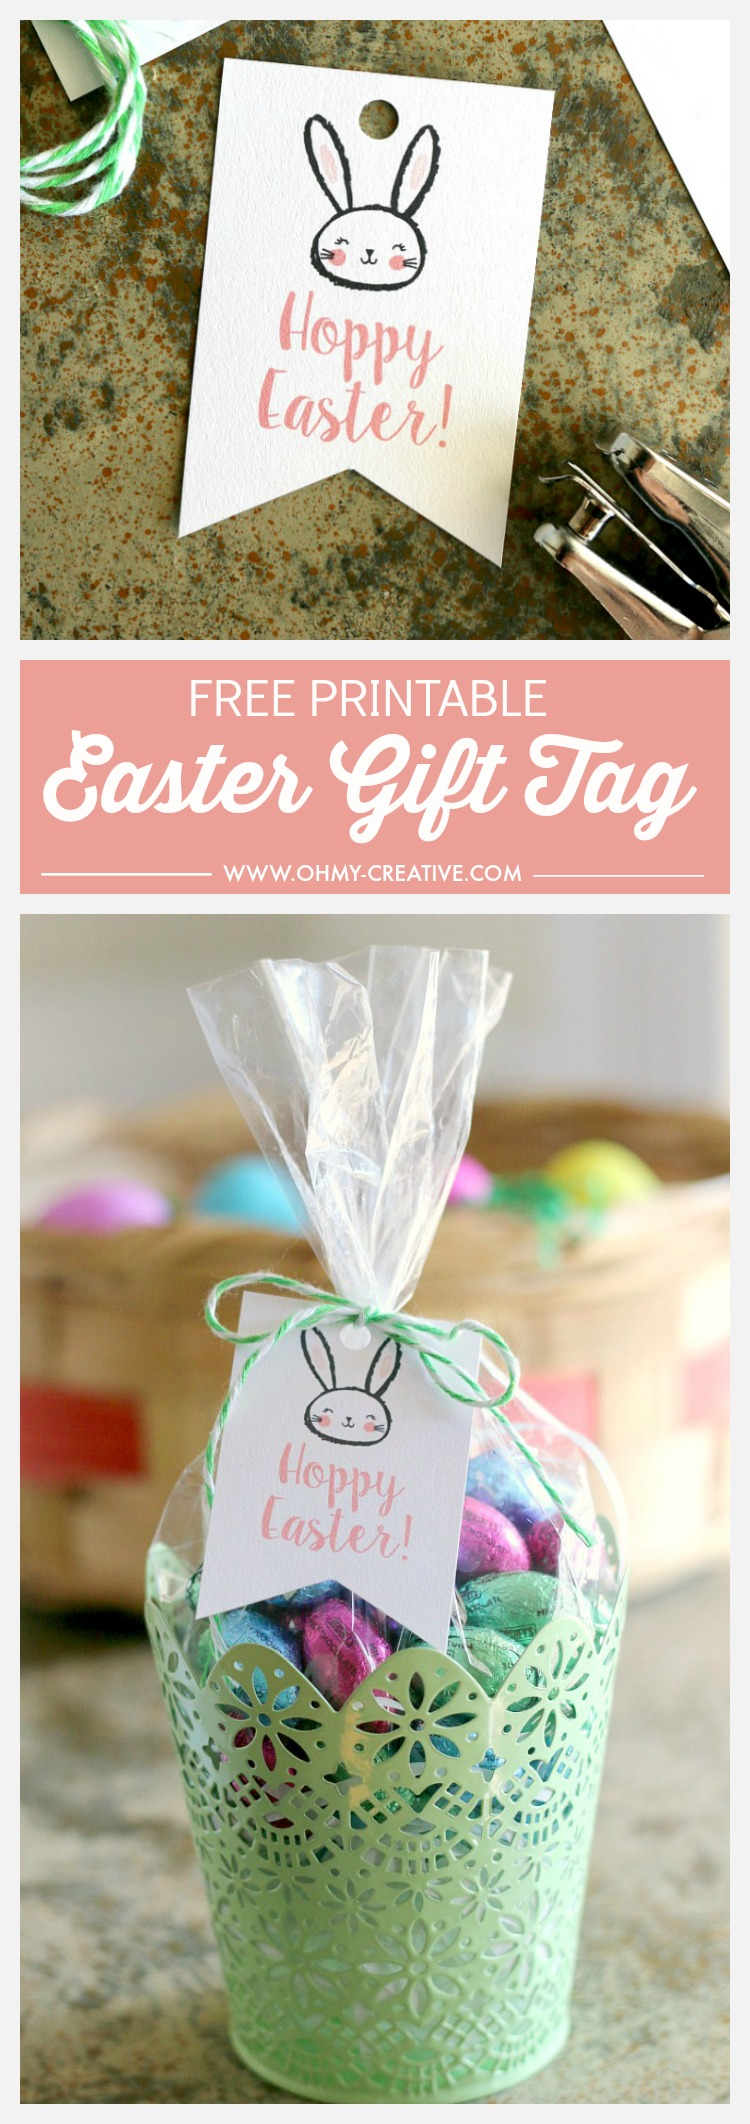 printable hoppy easter gift tags oh my creative printable hoppy easter gift tags ohmy creative com easter printable